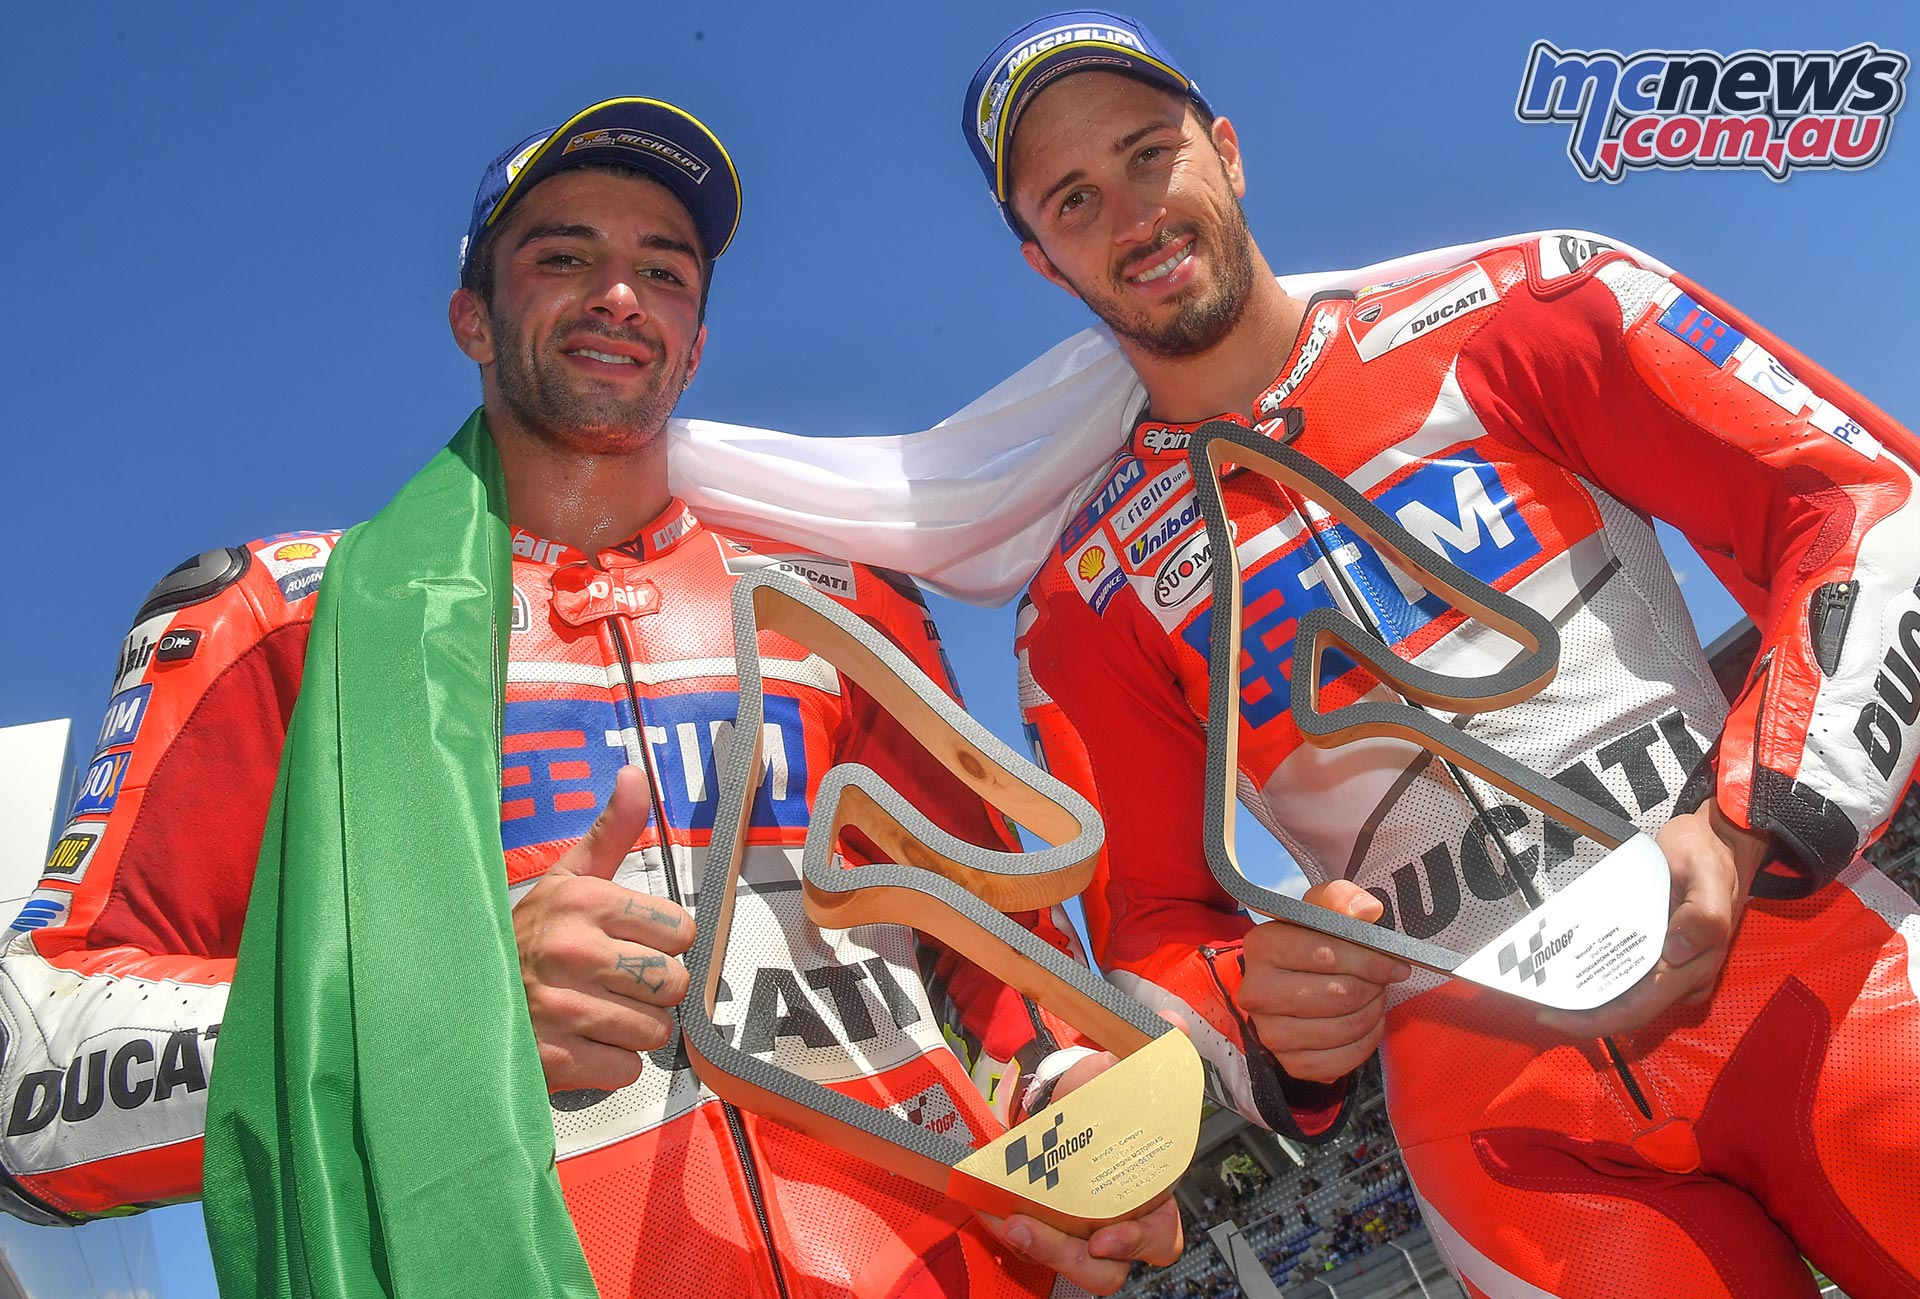 First MotoGP win for Andrea Iannone and first Ducati victory since 2010 Pos 1: Andrea Iannone, Pos 2: Andrea Dovizioso